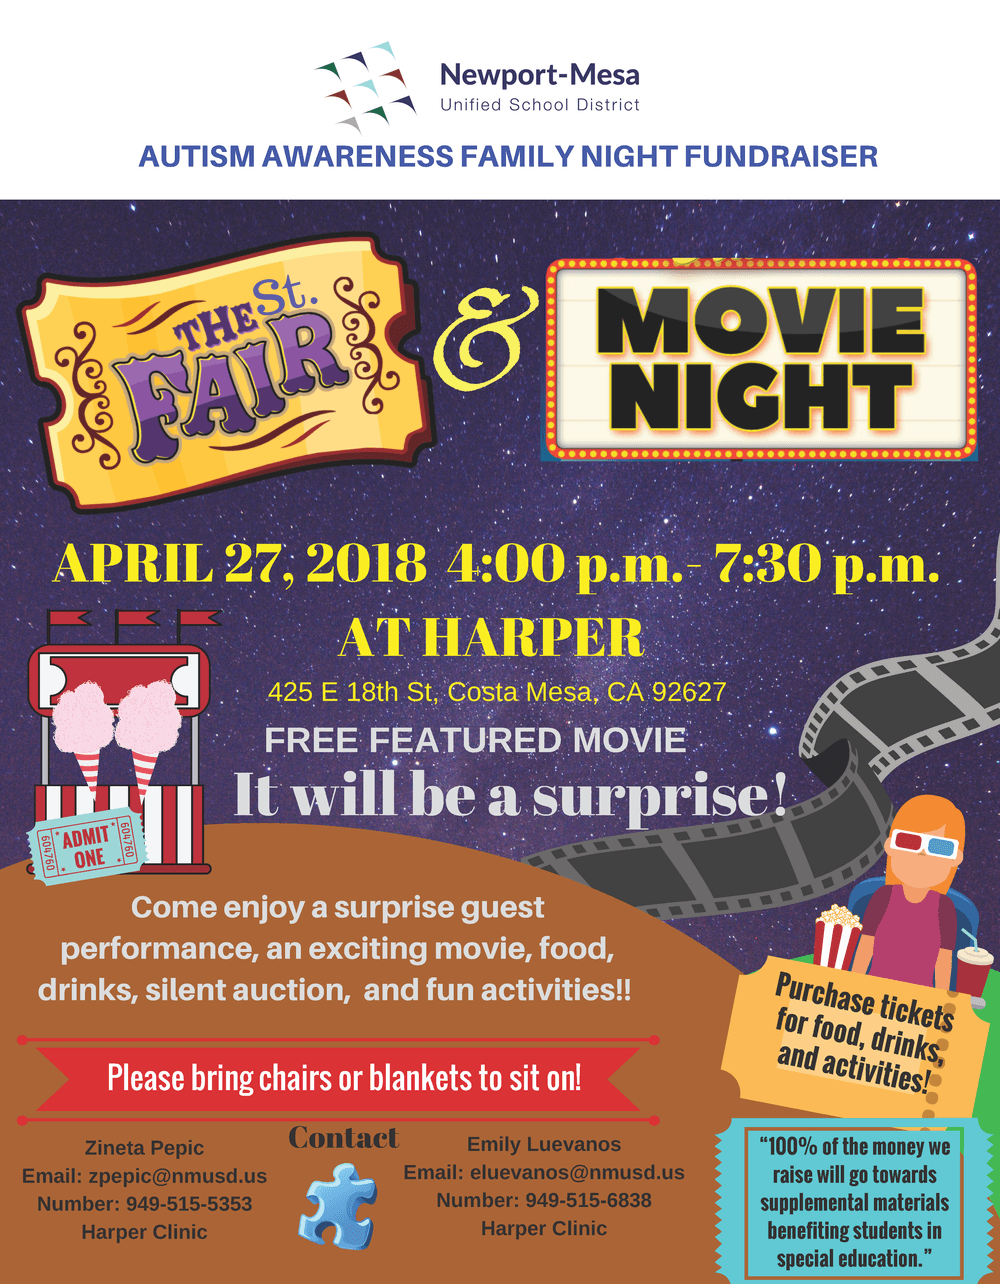 Autism Awarness Family Night Fundraiser Flyer